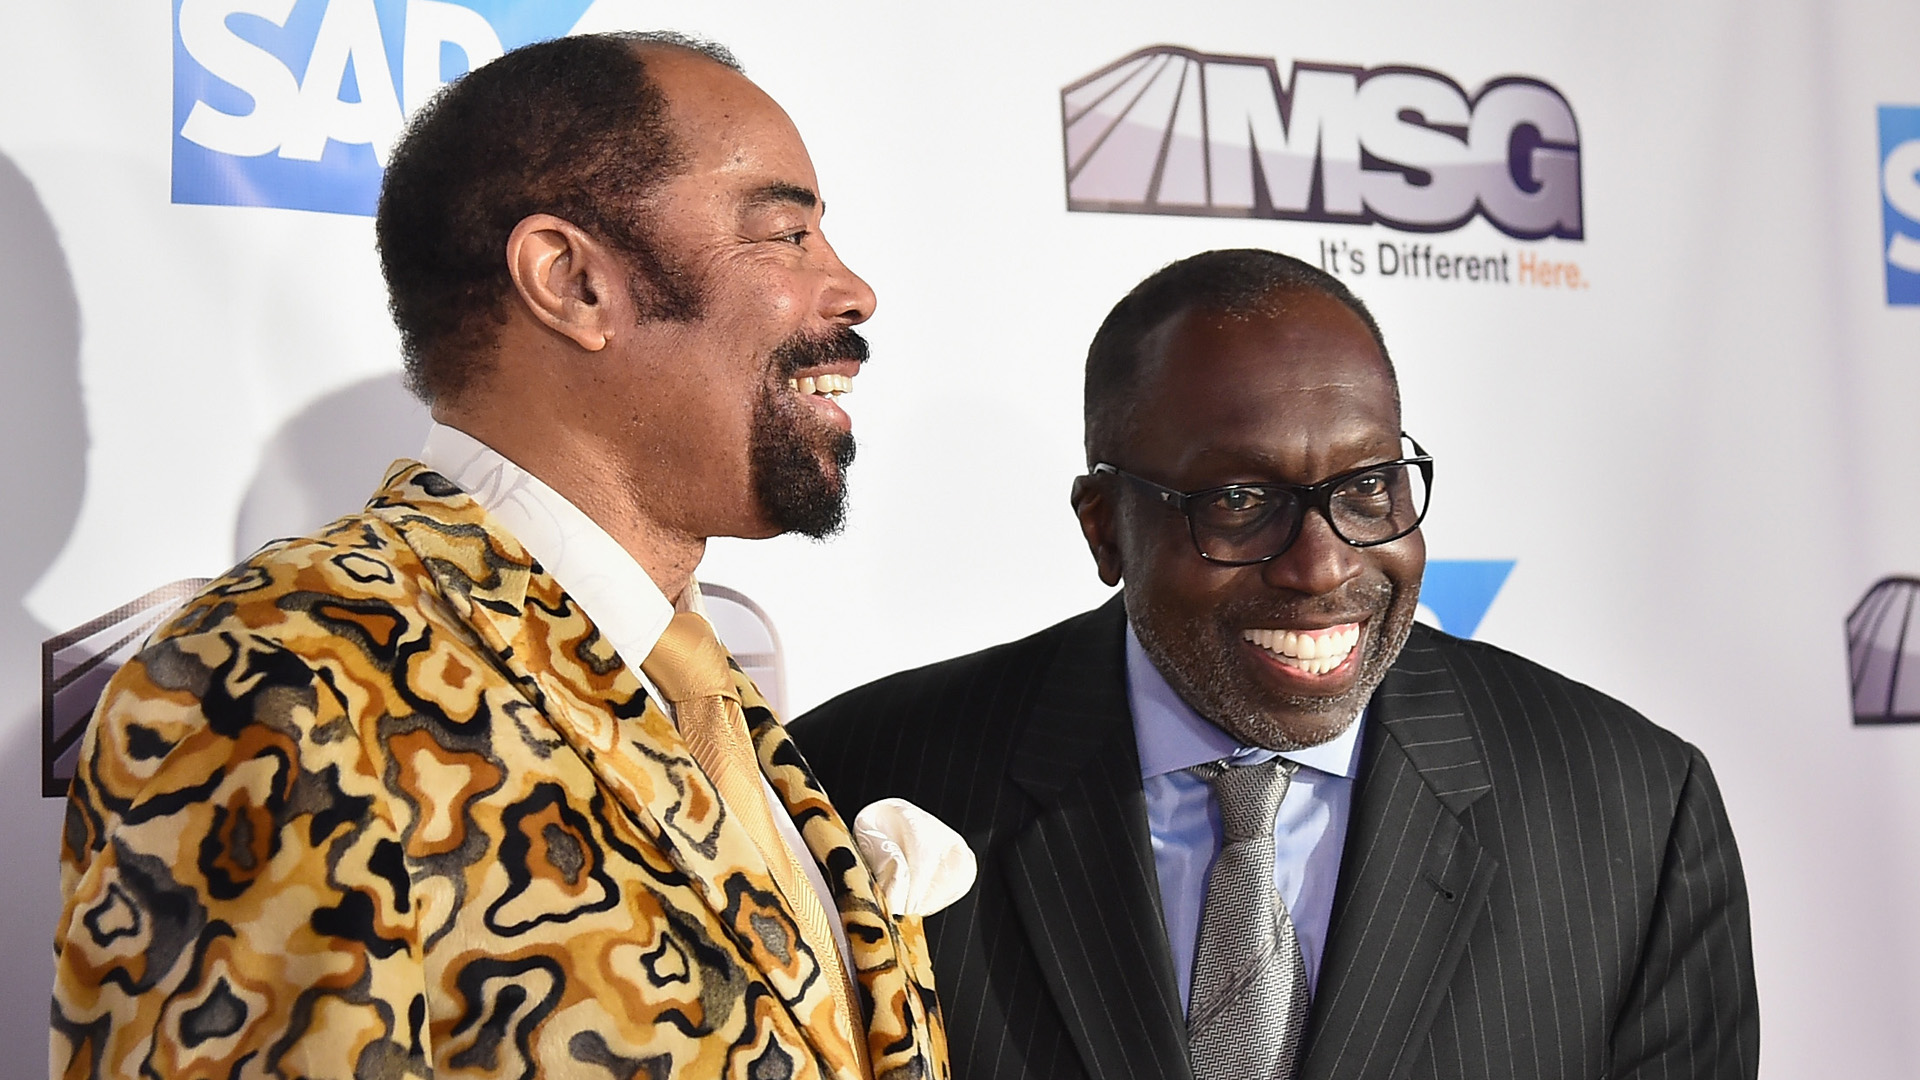 Earl-monroe-and-clyde-frazier_kqpv6p1pa84l1kx156ouhlldp